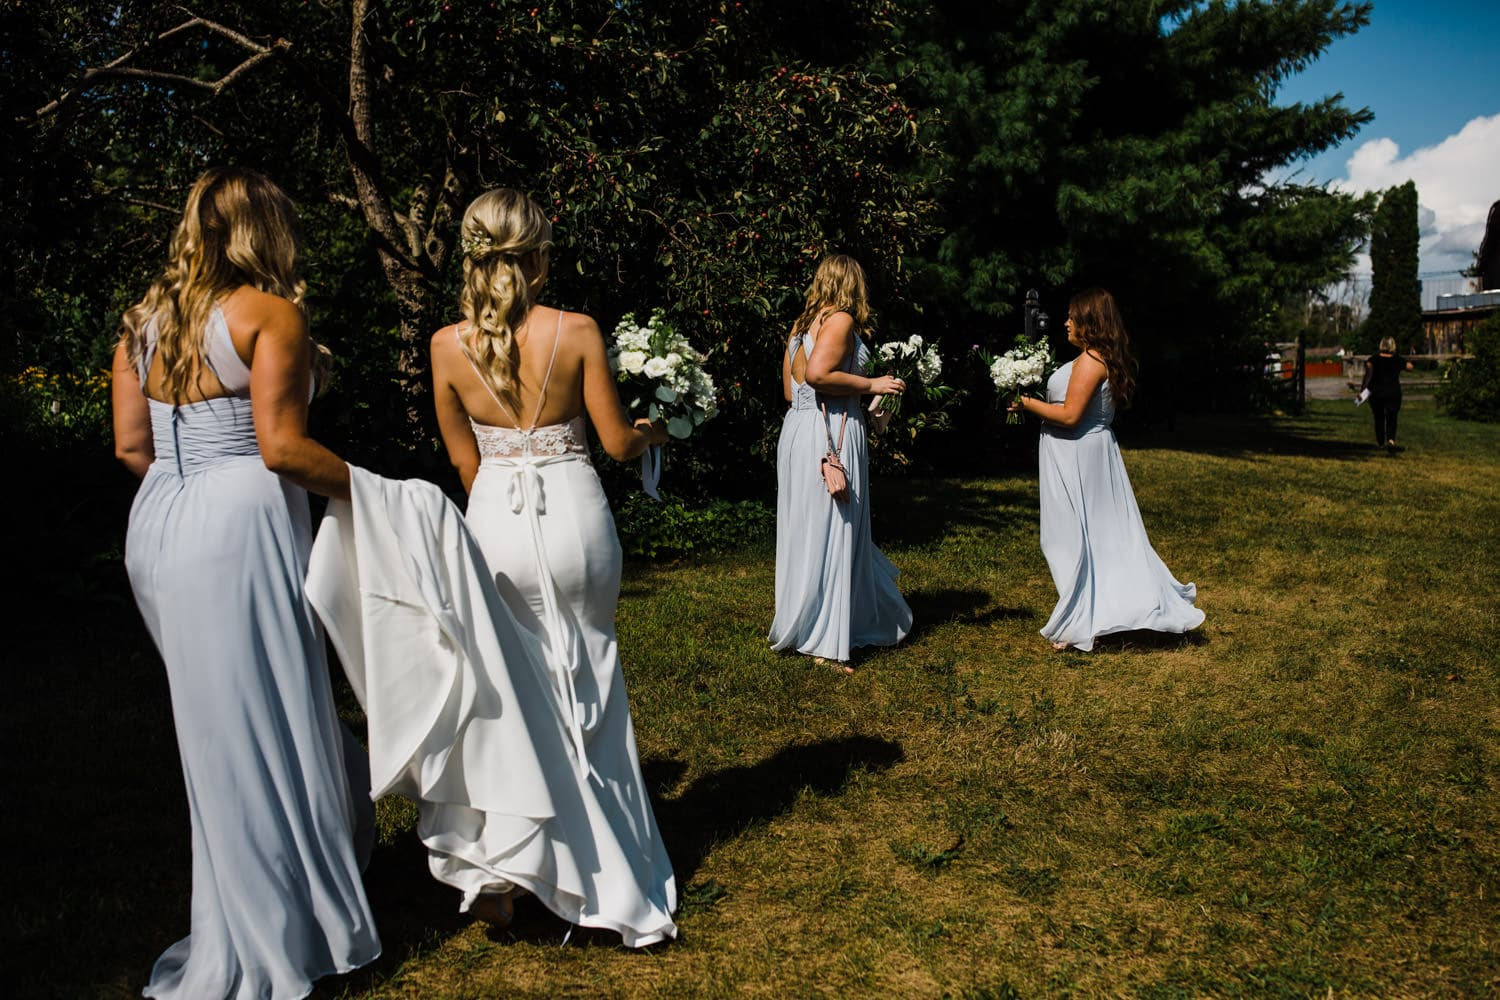 bride and bridesmaids walk over to ceremony - summer strathmere wedding - carley teresa photography